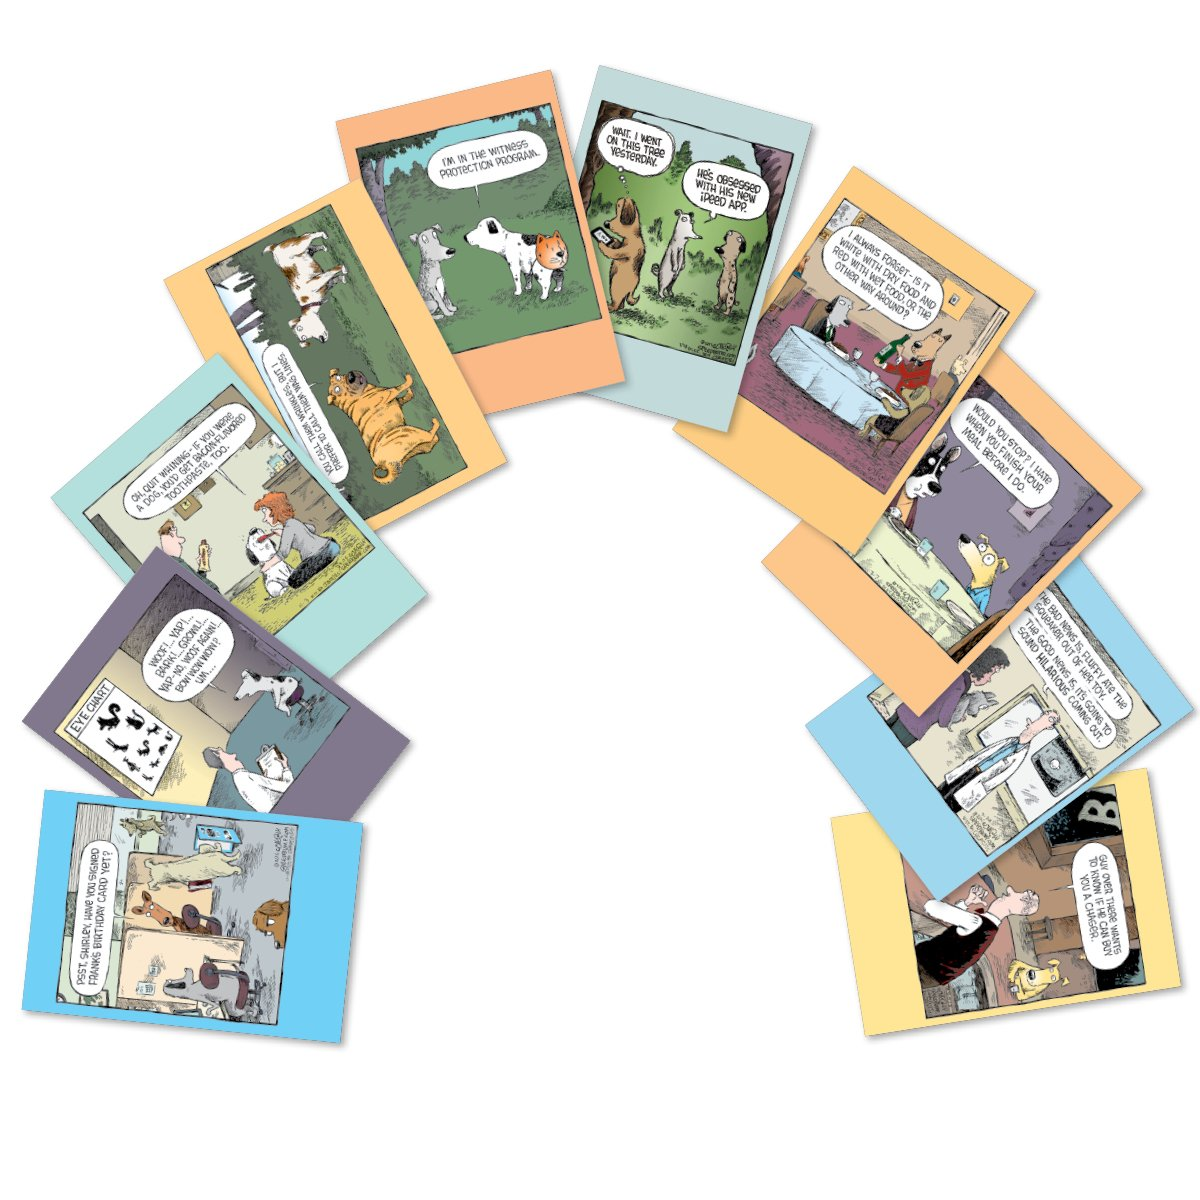 "10 'Dog Days Birthday Assortment' Note Cards (with Envelopes) - Assorted & Boxed Greeting Cards - Funny Cartoon Bday Cards for Friends, Family, All Ages - Stationery Notecards (4"" x 5 ¼"") #A2665BDG by NobleWorks (Image #1)"